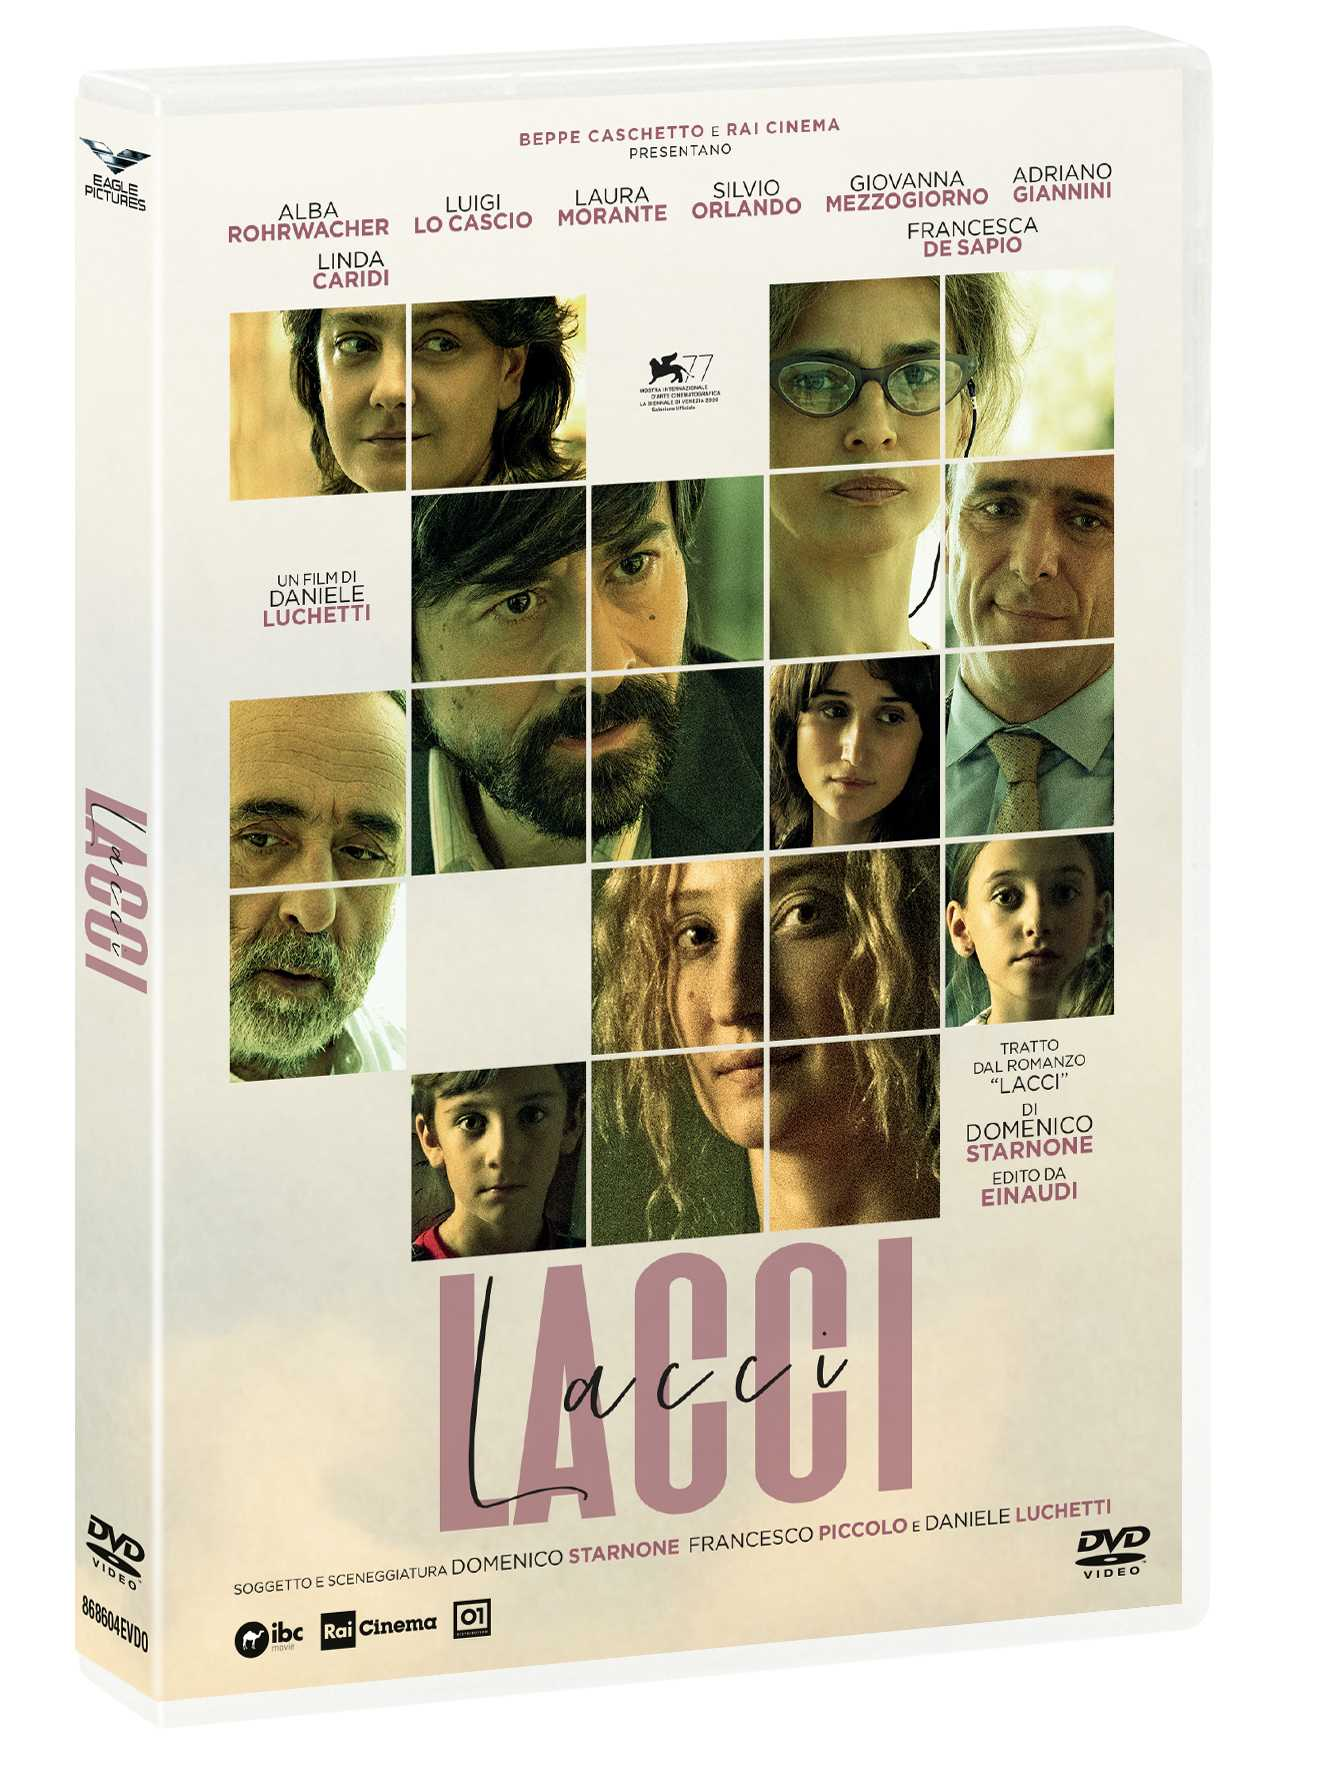 Blu-ray Review Lacci, the opening film in Venice 77 by Daniele Luchetti